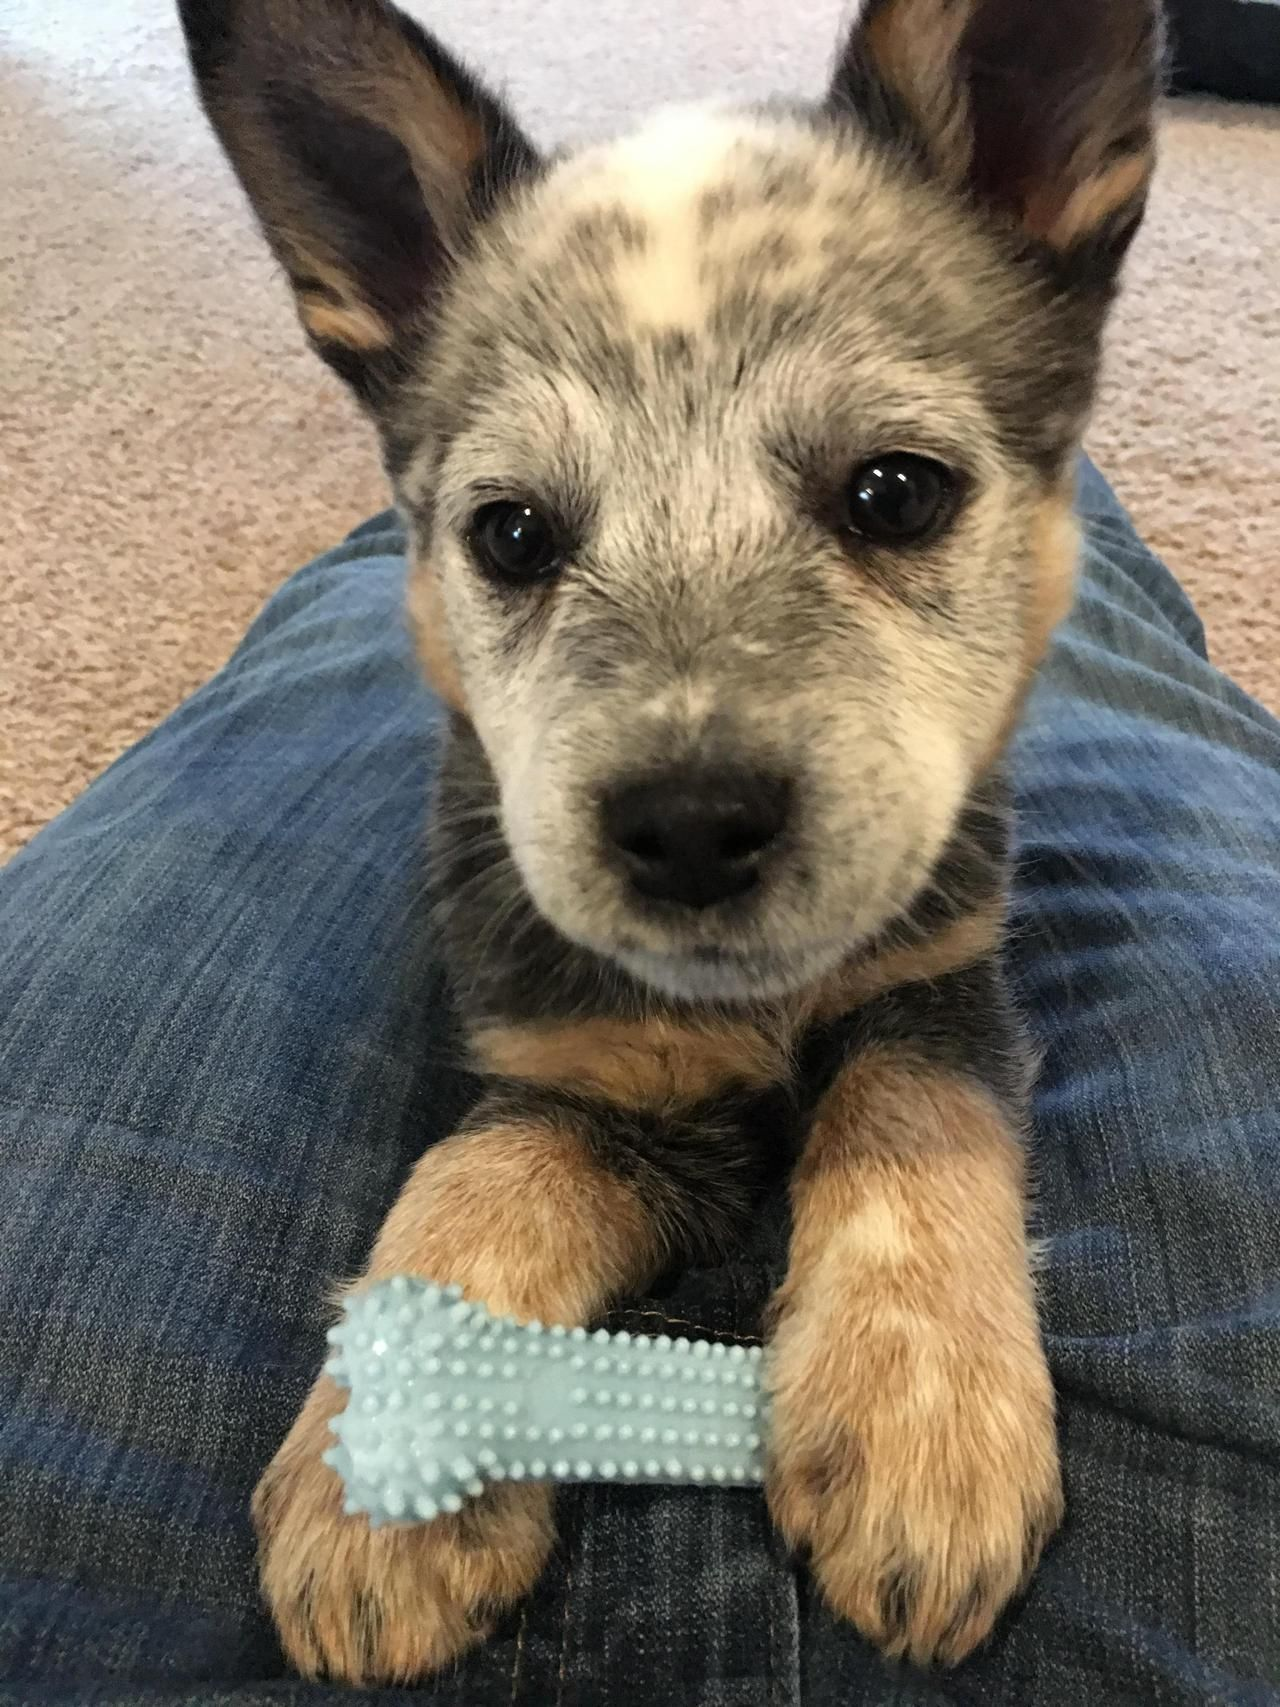 Meet Lenox Our 8 Week Old Blue Heeler Aww Cattle Dogs Rule